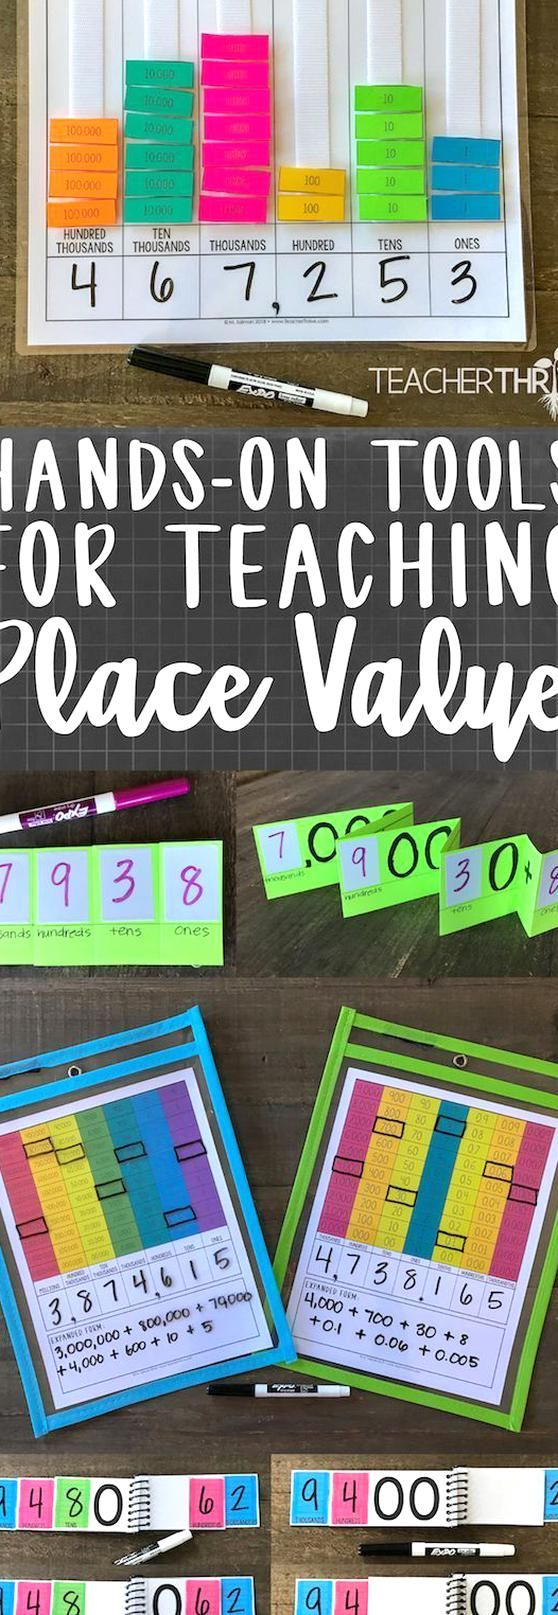 Hands On Activities For Teaching Place Value Via Gottoteach Mathlessons In 2020 Teaching Place Values Place Values Teaching [ 1615 x 558 Pixel ]